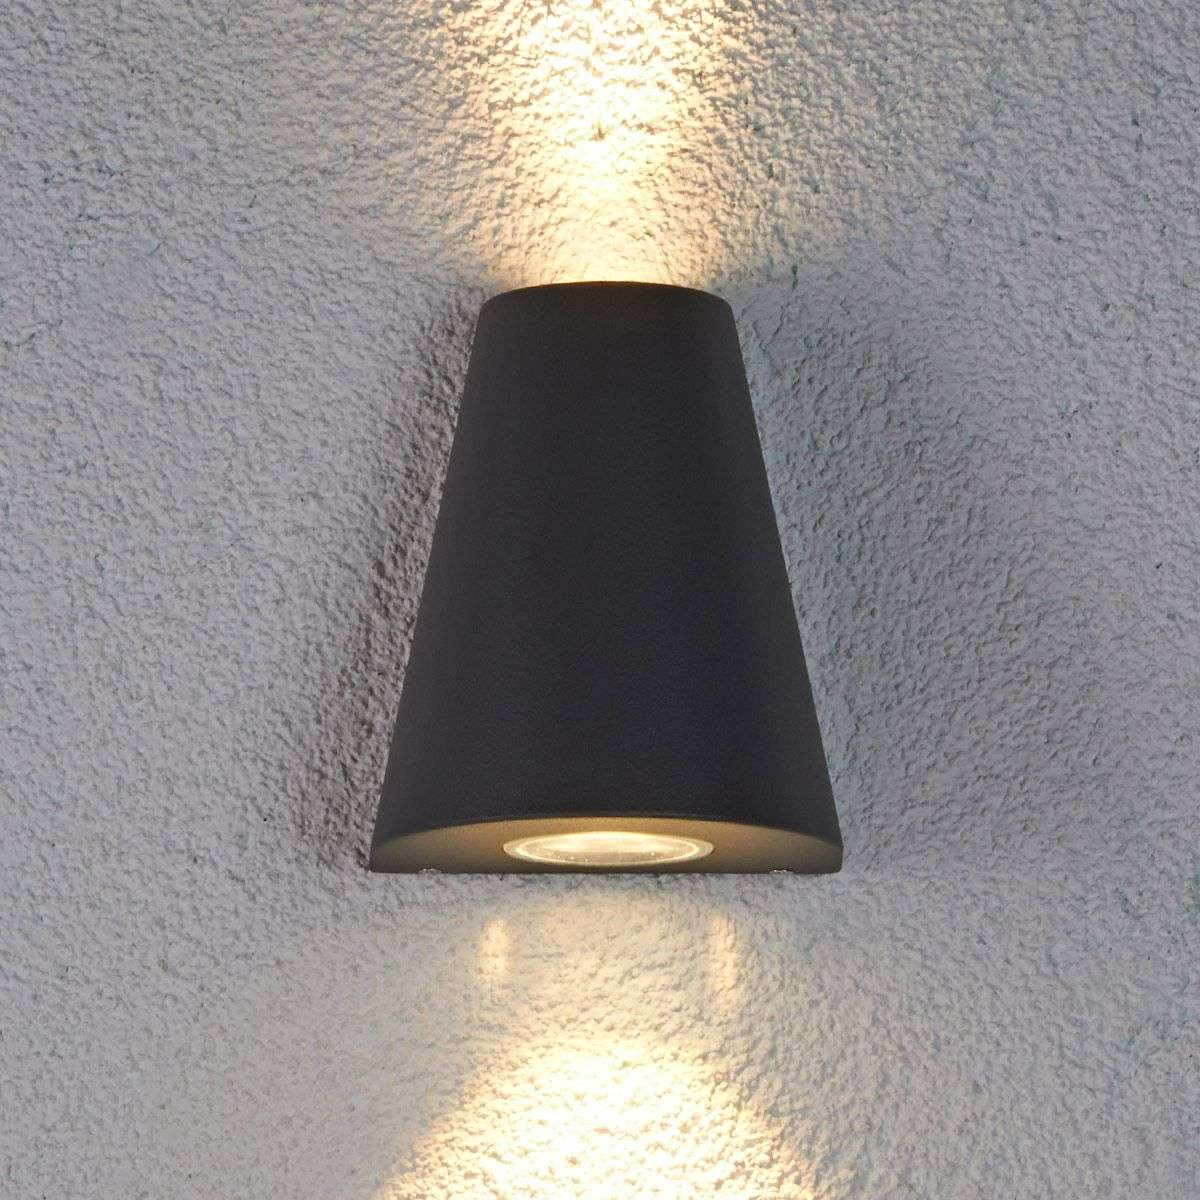 Aleynda double shining led outdoor light lights aleynda double shining led outdoor light aloadofball Image collections